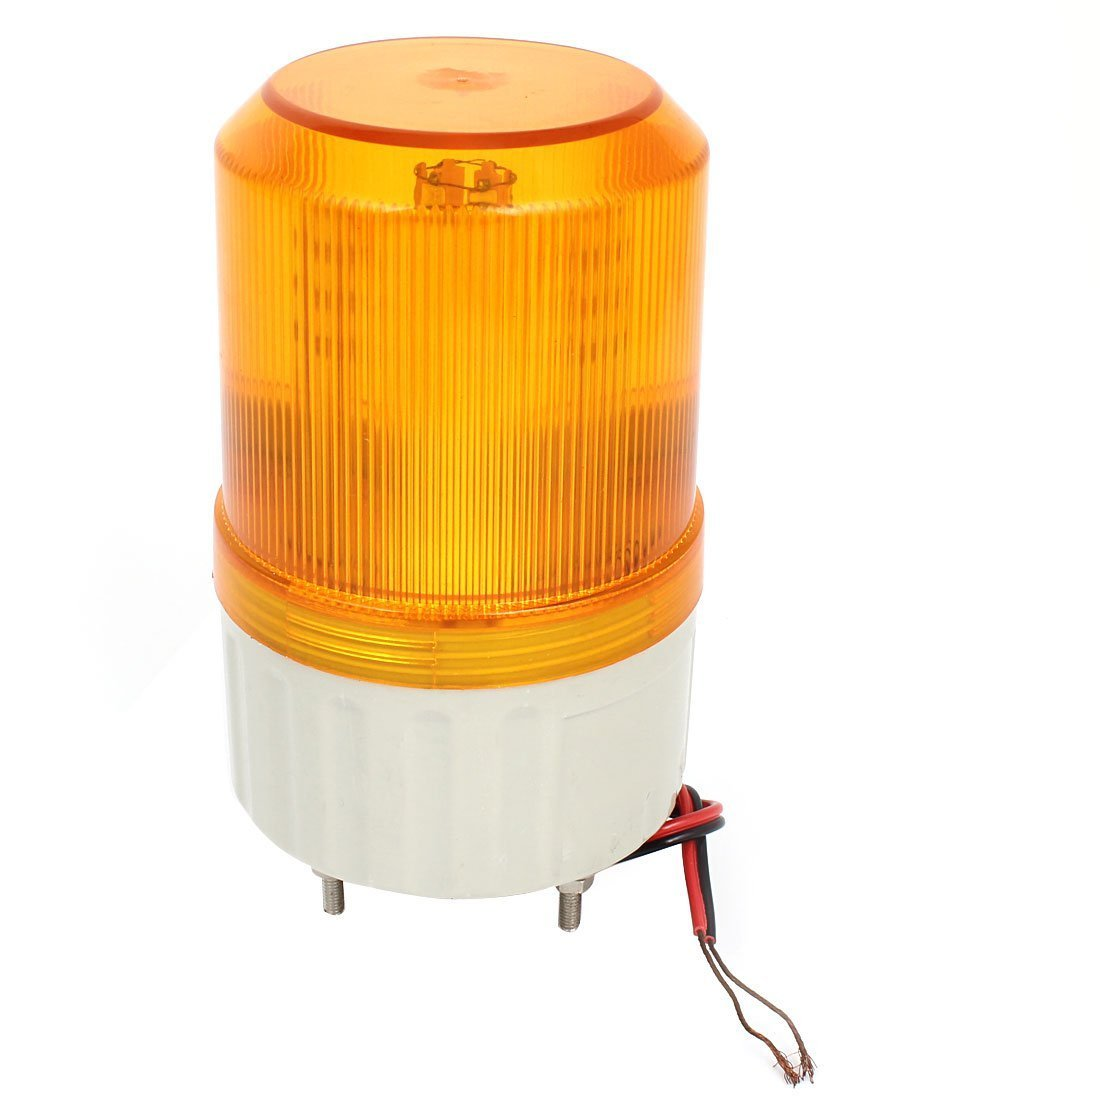 Baomain Industrial Signal Tower Safety Stack Light LED1081 DC24V LED Flash Yellow Lamp